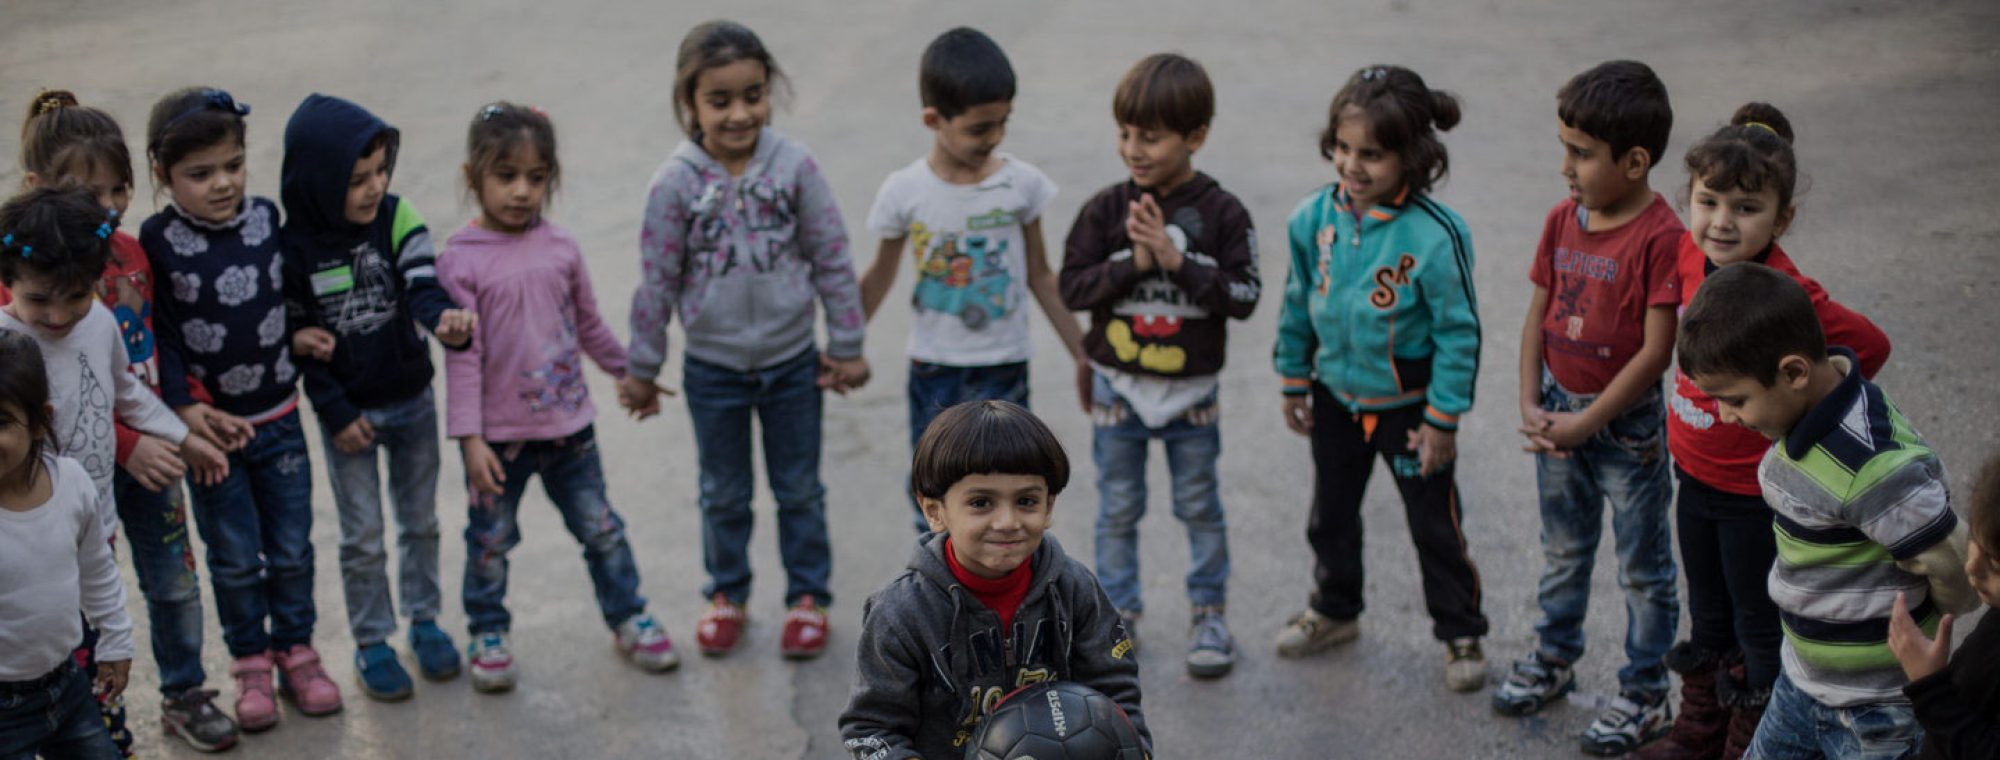 Refugee children playing at a JRS school in Lebanon. (Kristóf Hölvényi/Jesuit Refugee Service)